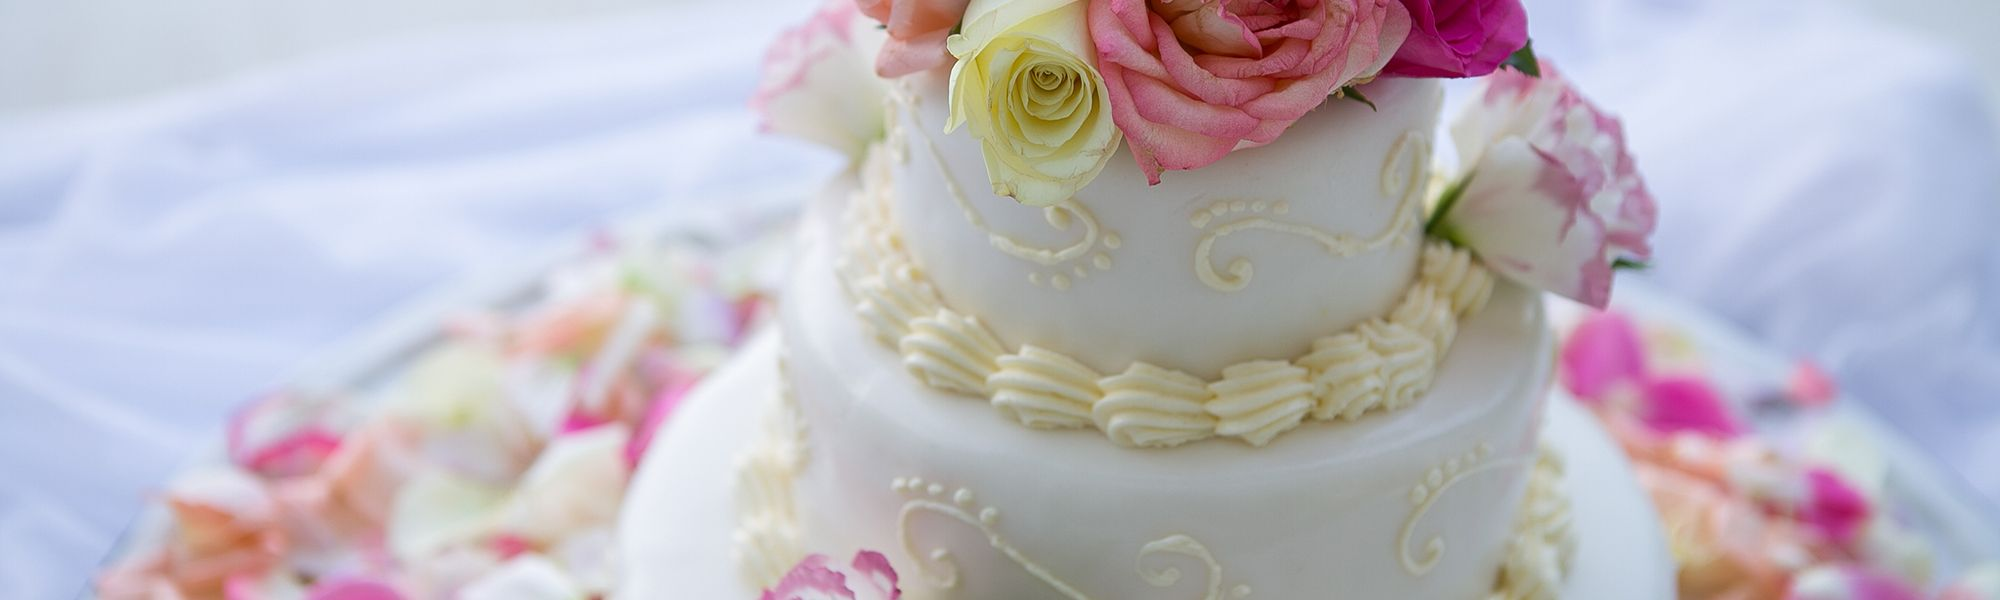 Wedding Cakes Leicester